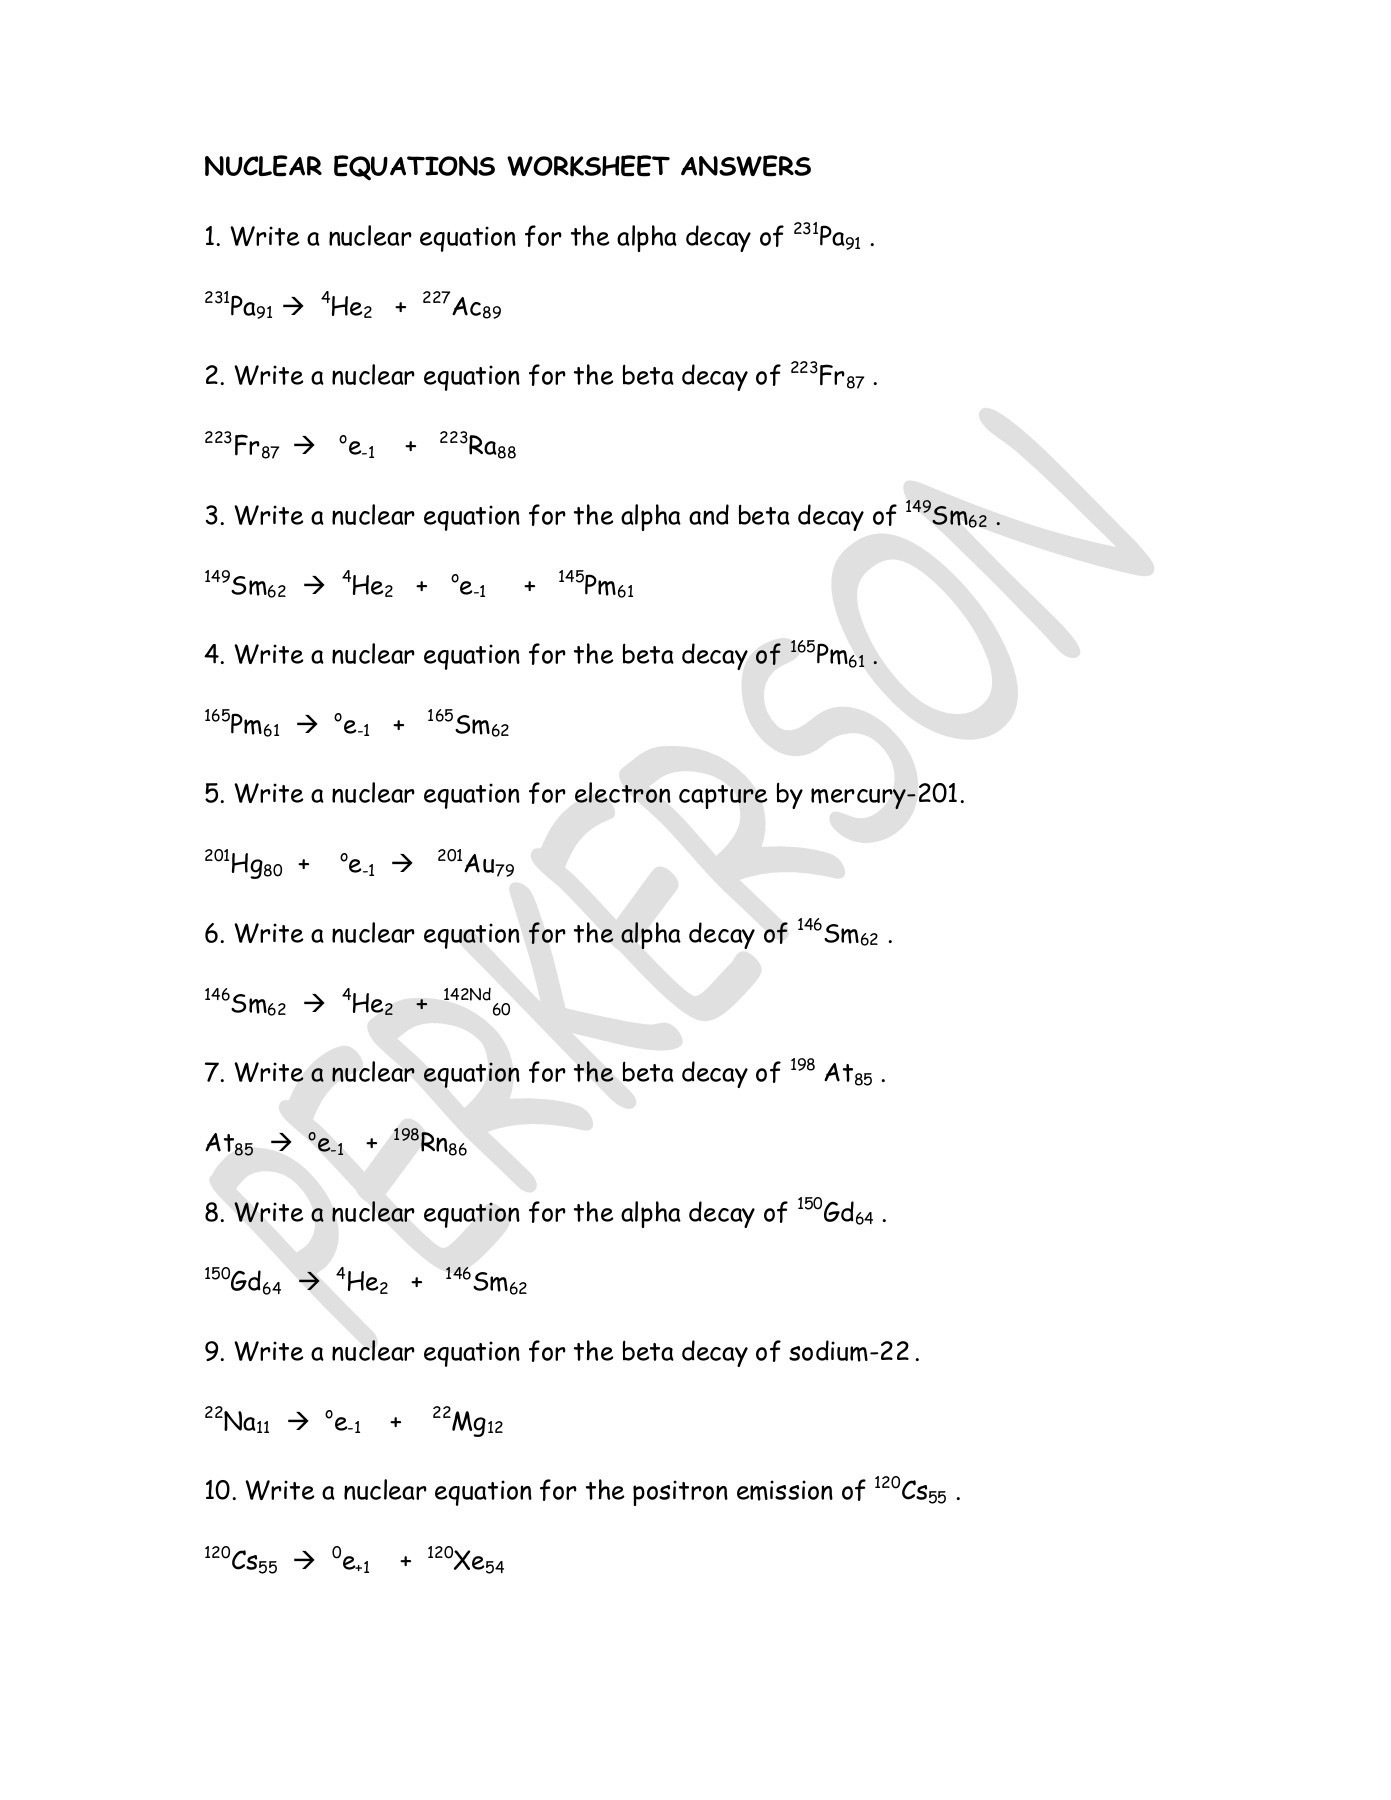 Writing Nuclear Equations Worksheet Answers